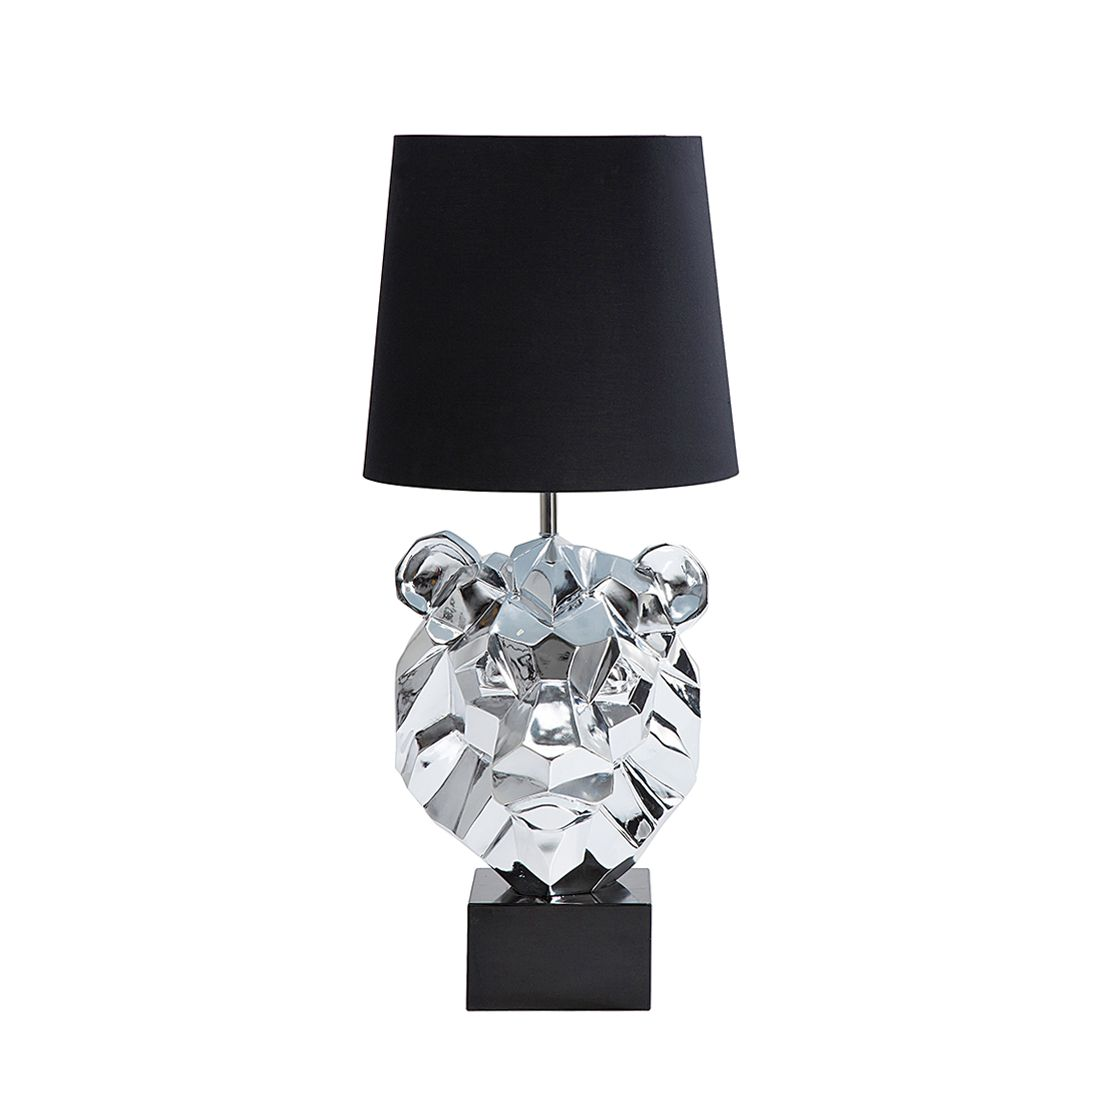 EEK A++, Lampadaire Lion Head - Chrome, Kare Design